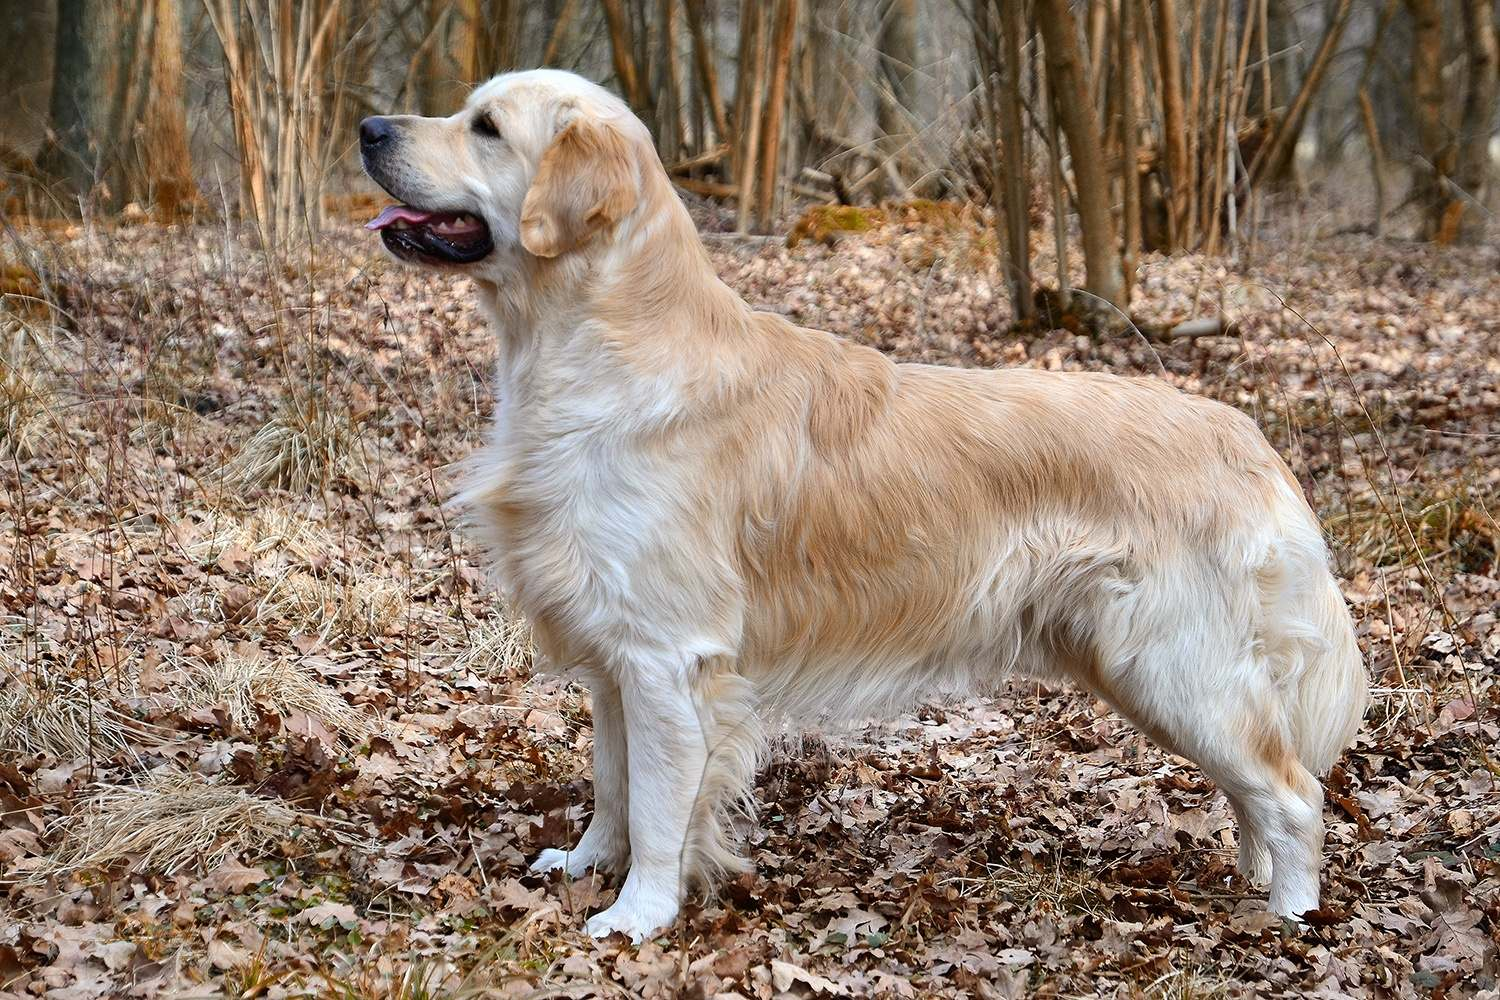 The Golden Retriever is a large-sized breed of dog bred as gun dogs to retrieve shot waterfowl